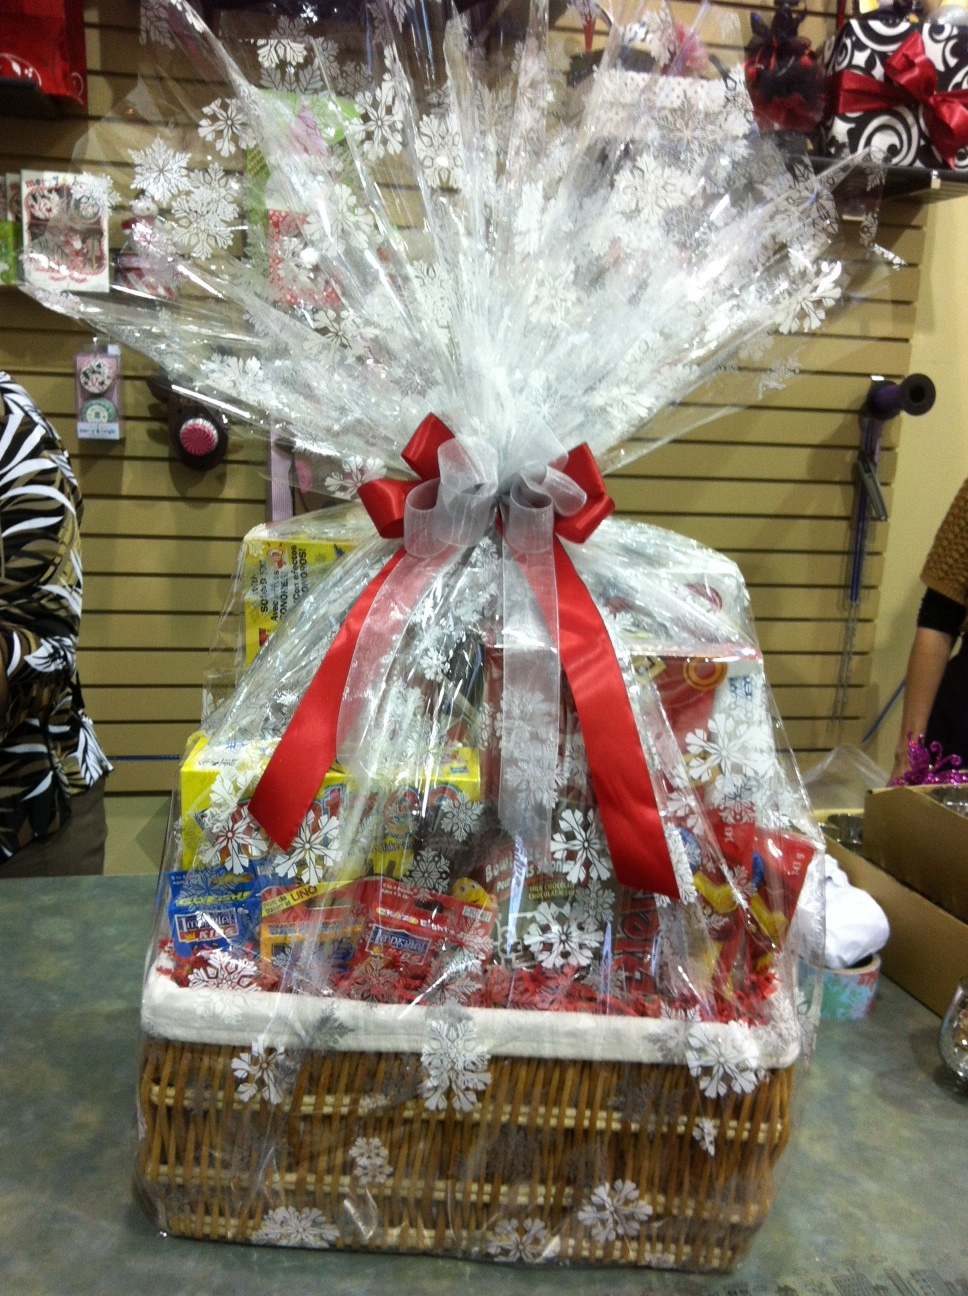 Wrap Up Those Gift Baskets